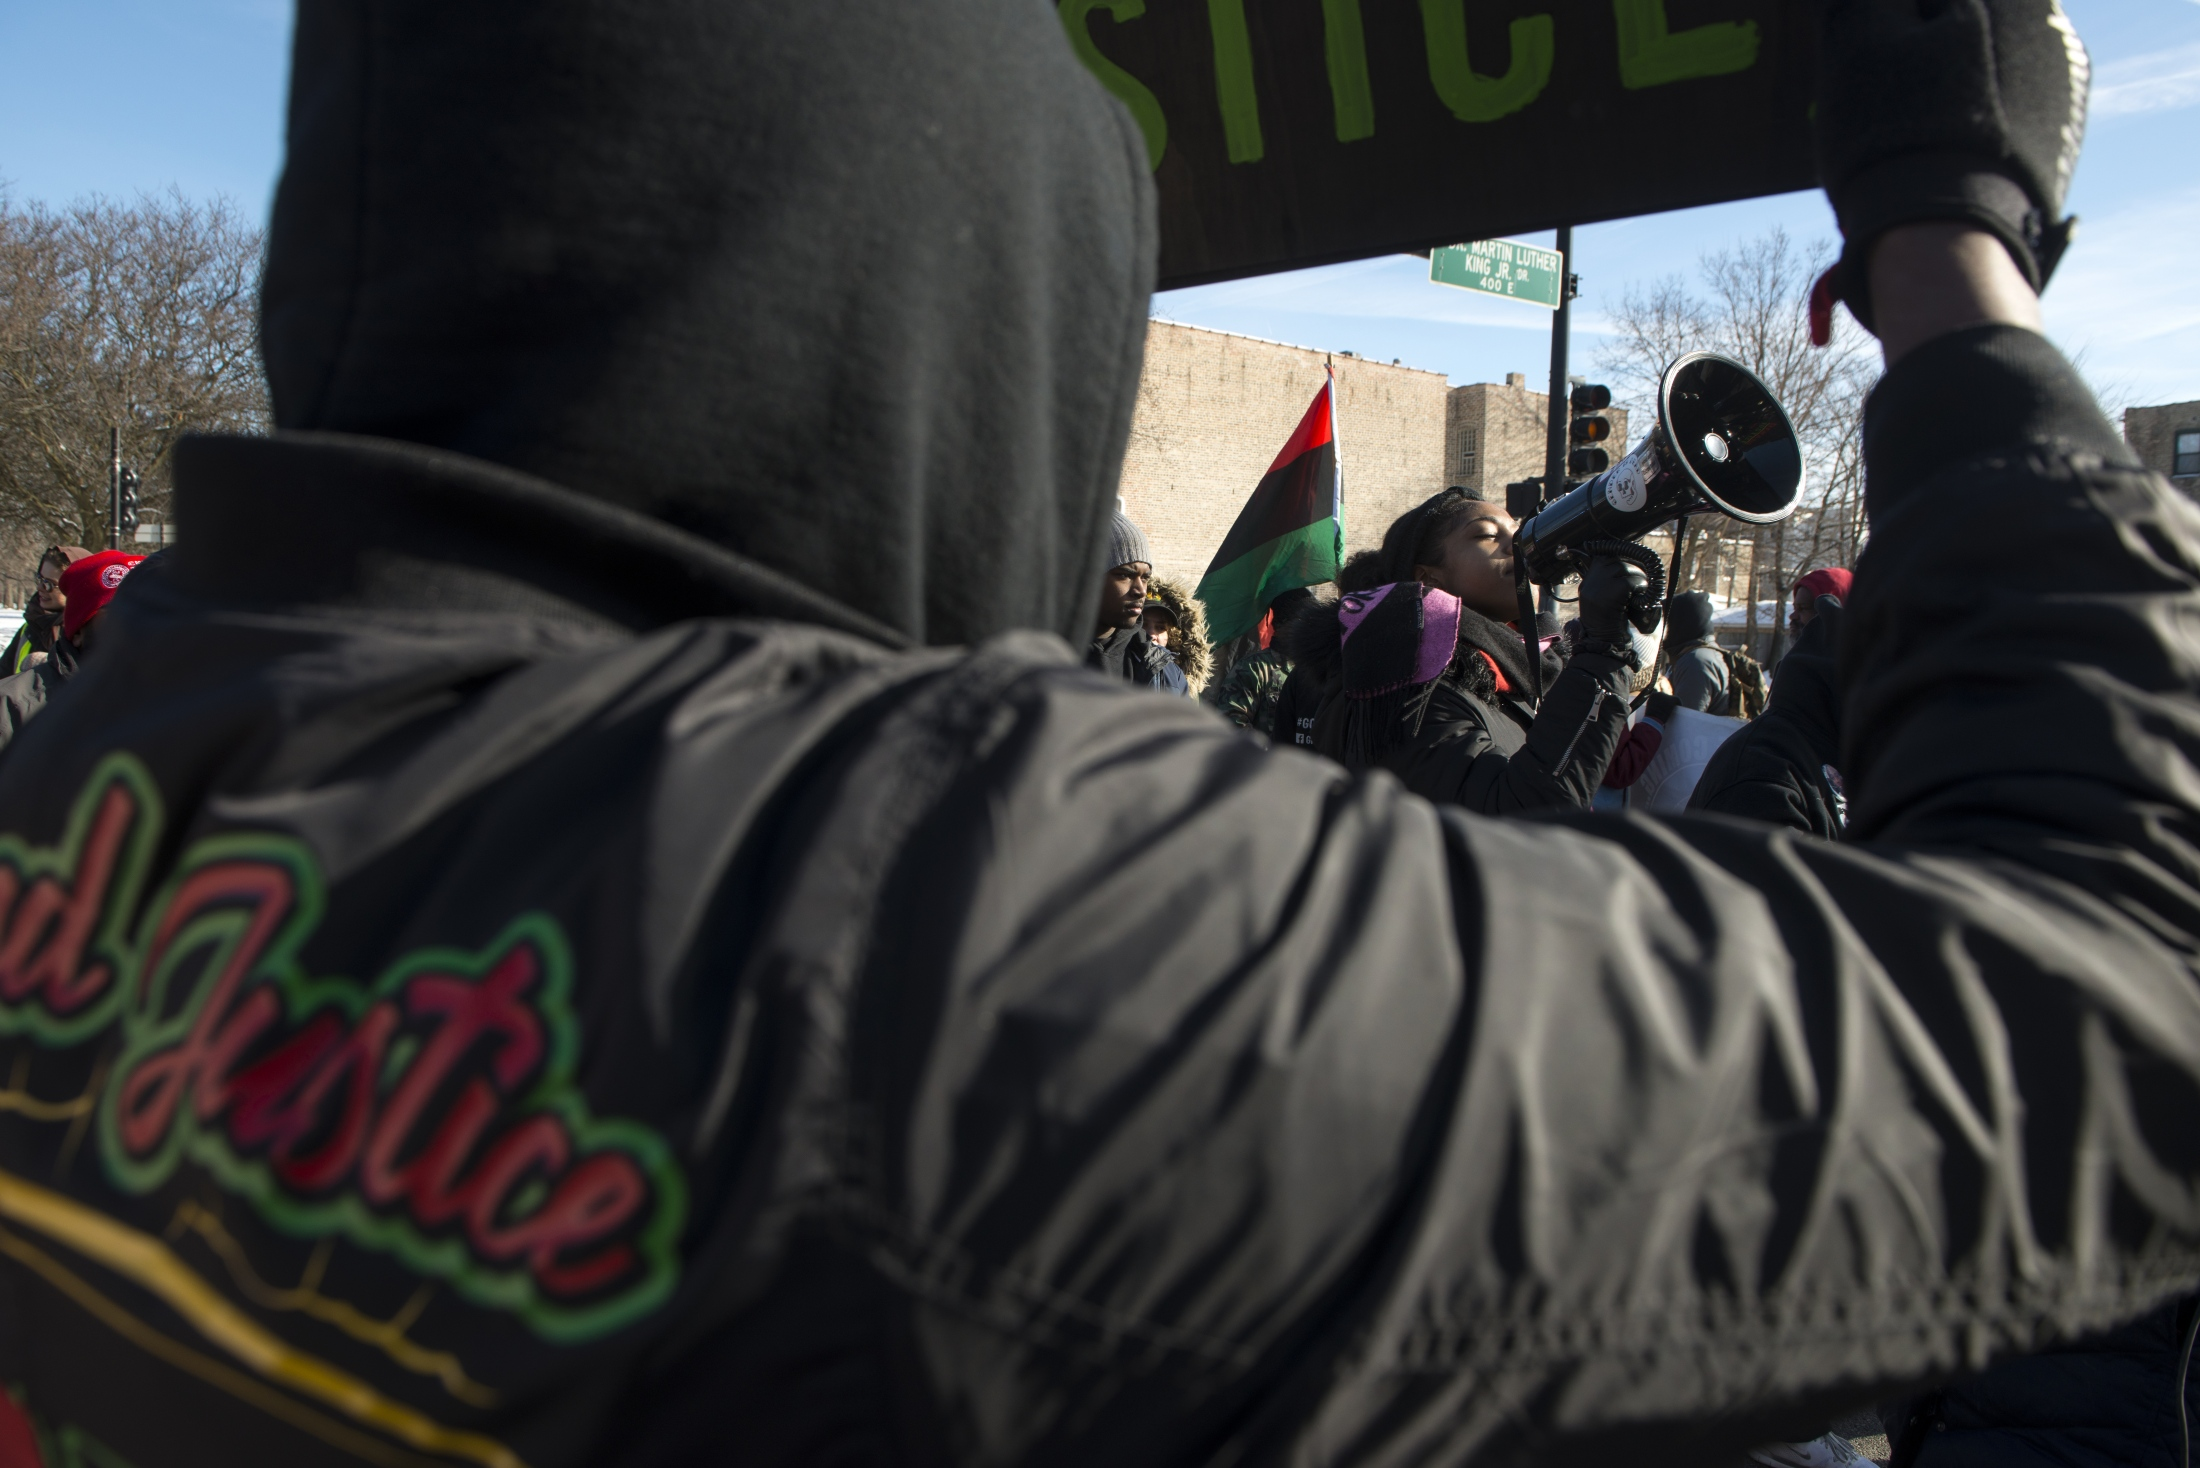 """Photography image - 01.21.19  In the wake of what some have called """"A travesty of justice,"""" Activist and community leaders march down King Drive in freezing temperatures in response to Jason Van Dyke sentencing, and the CPD conspiracy acquittal."""